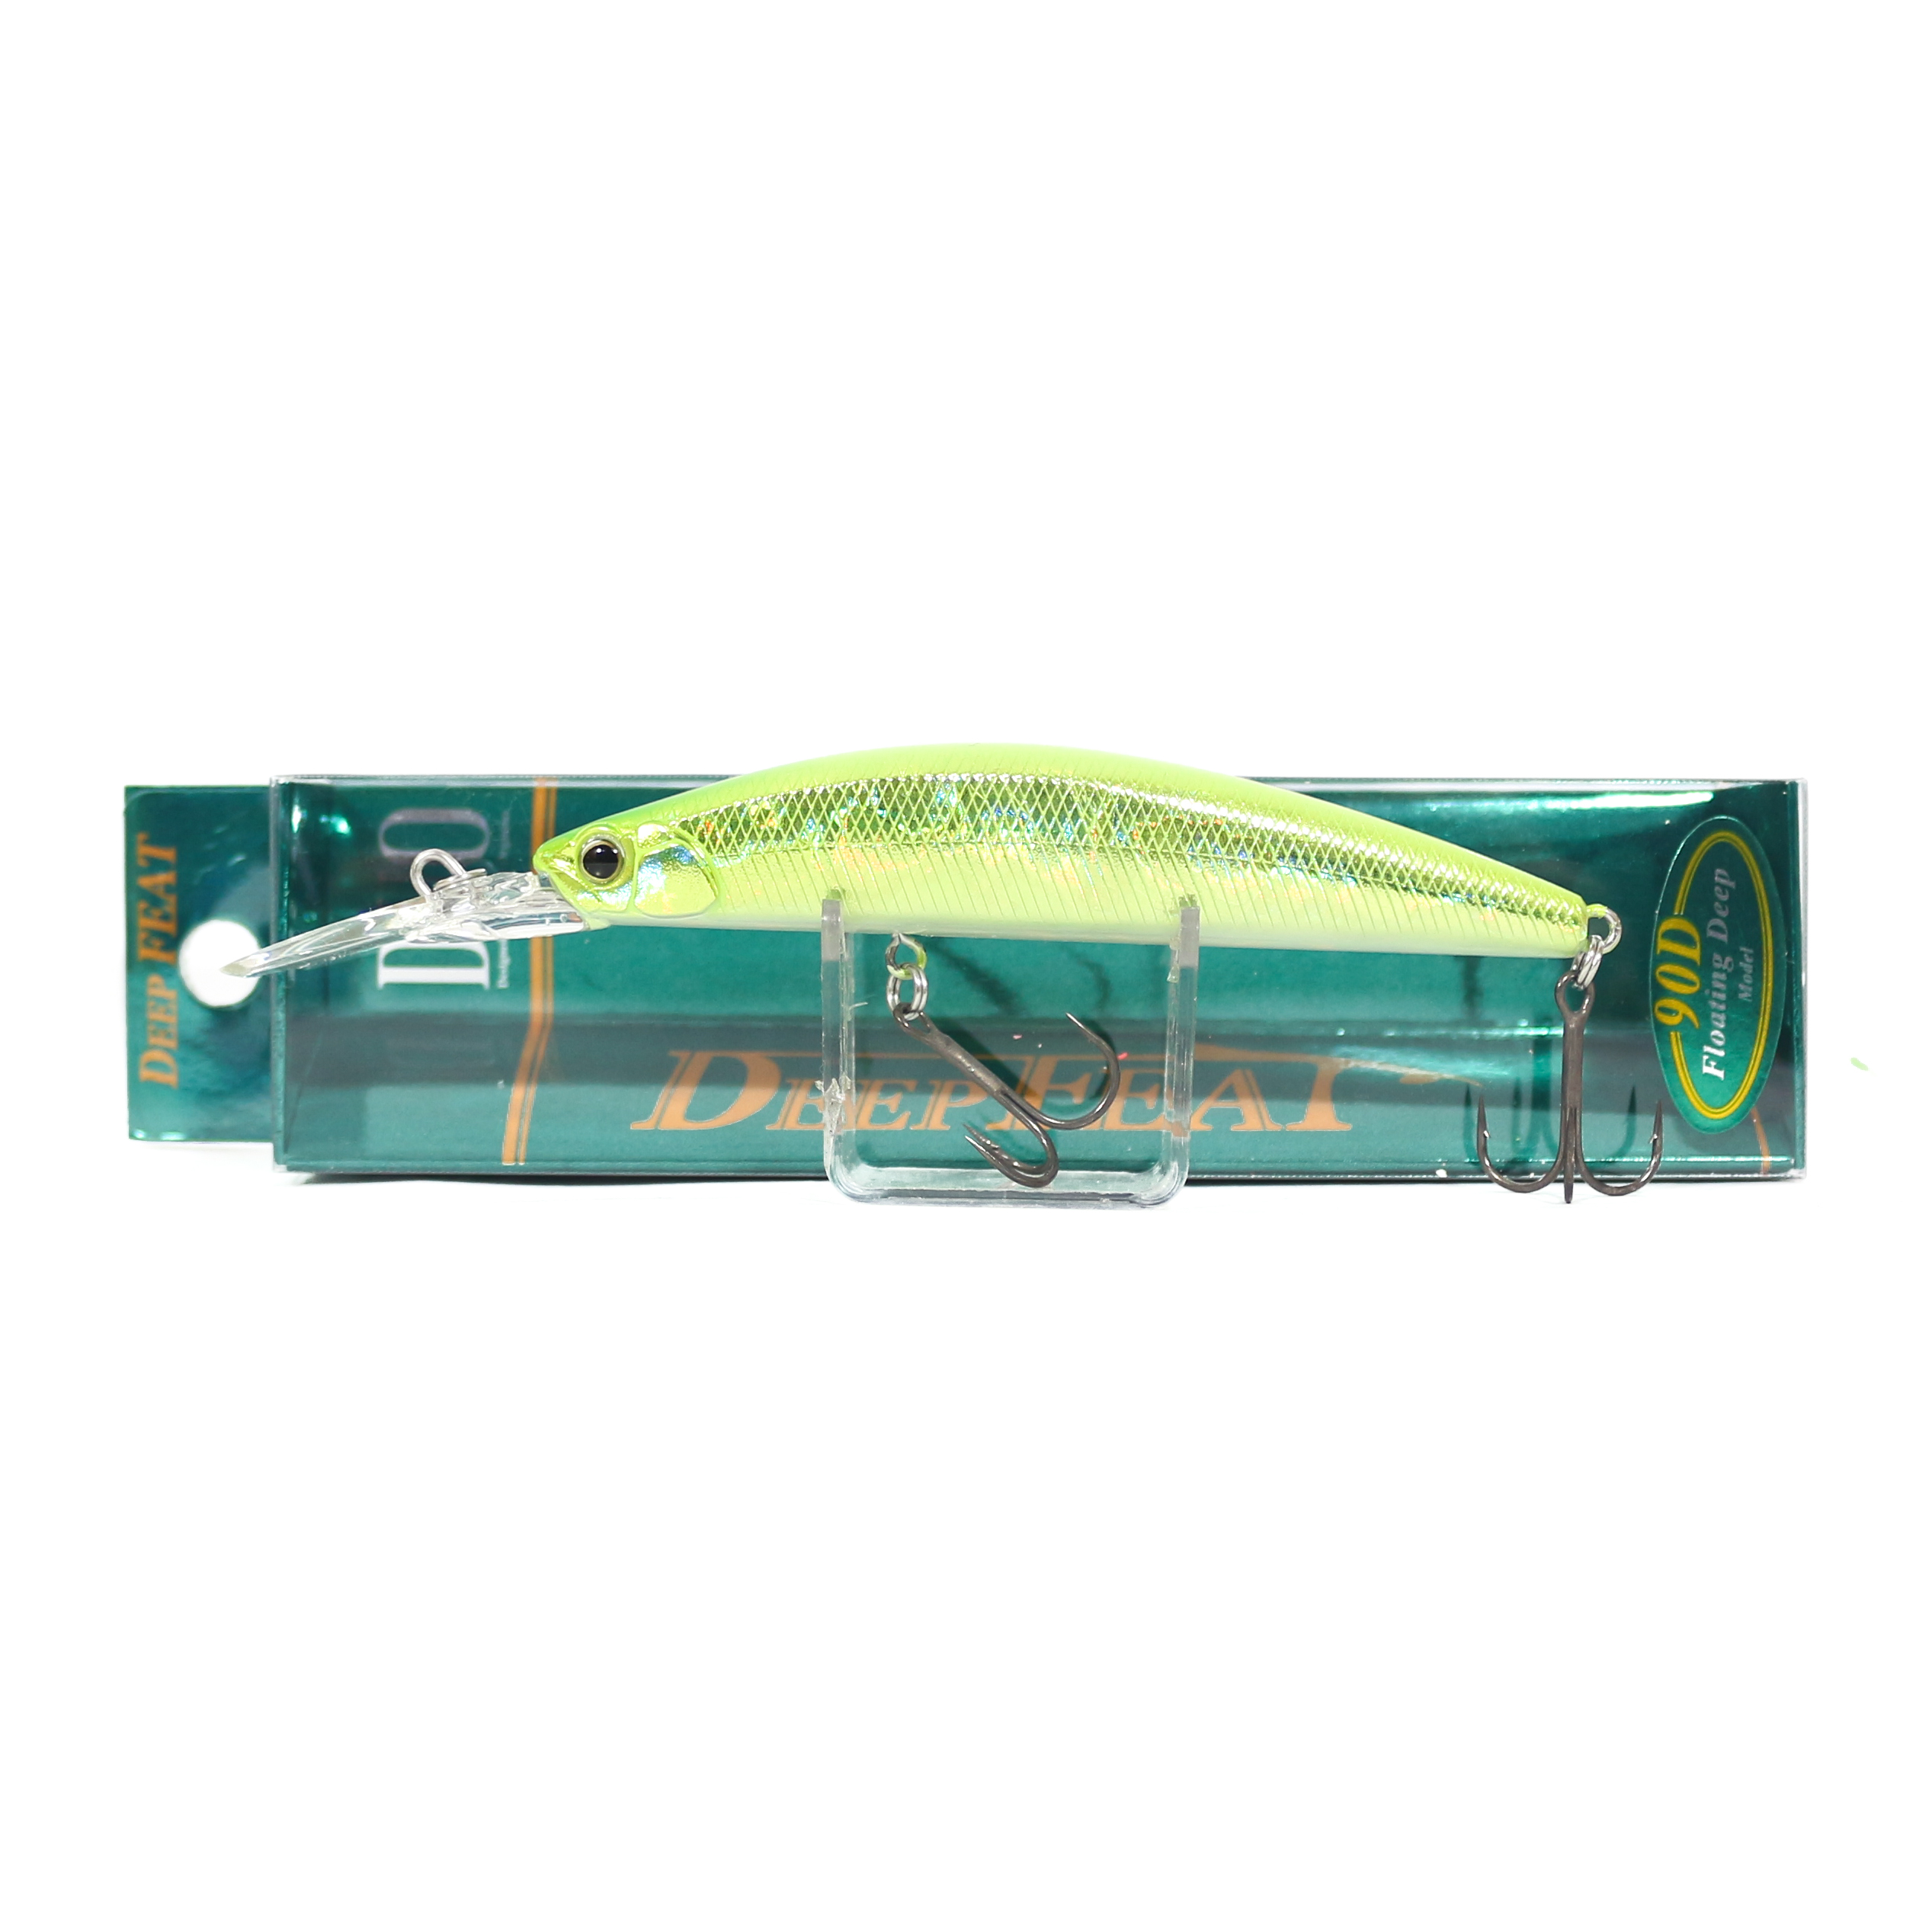 Duo Deep Feat 90 D Diving Floating Lure ADA4127 (0117)